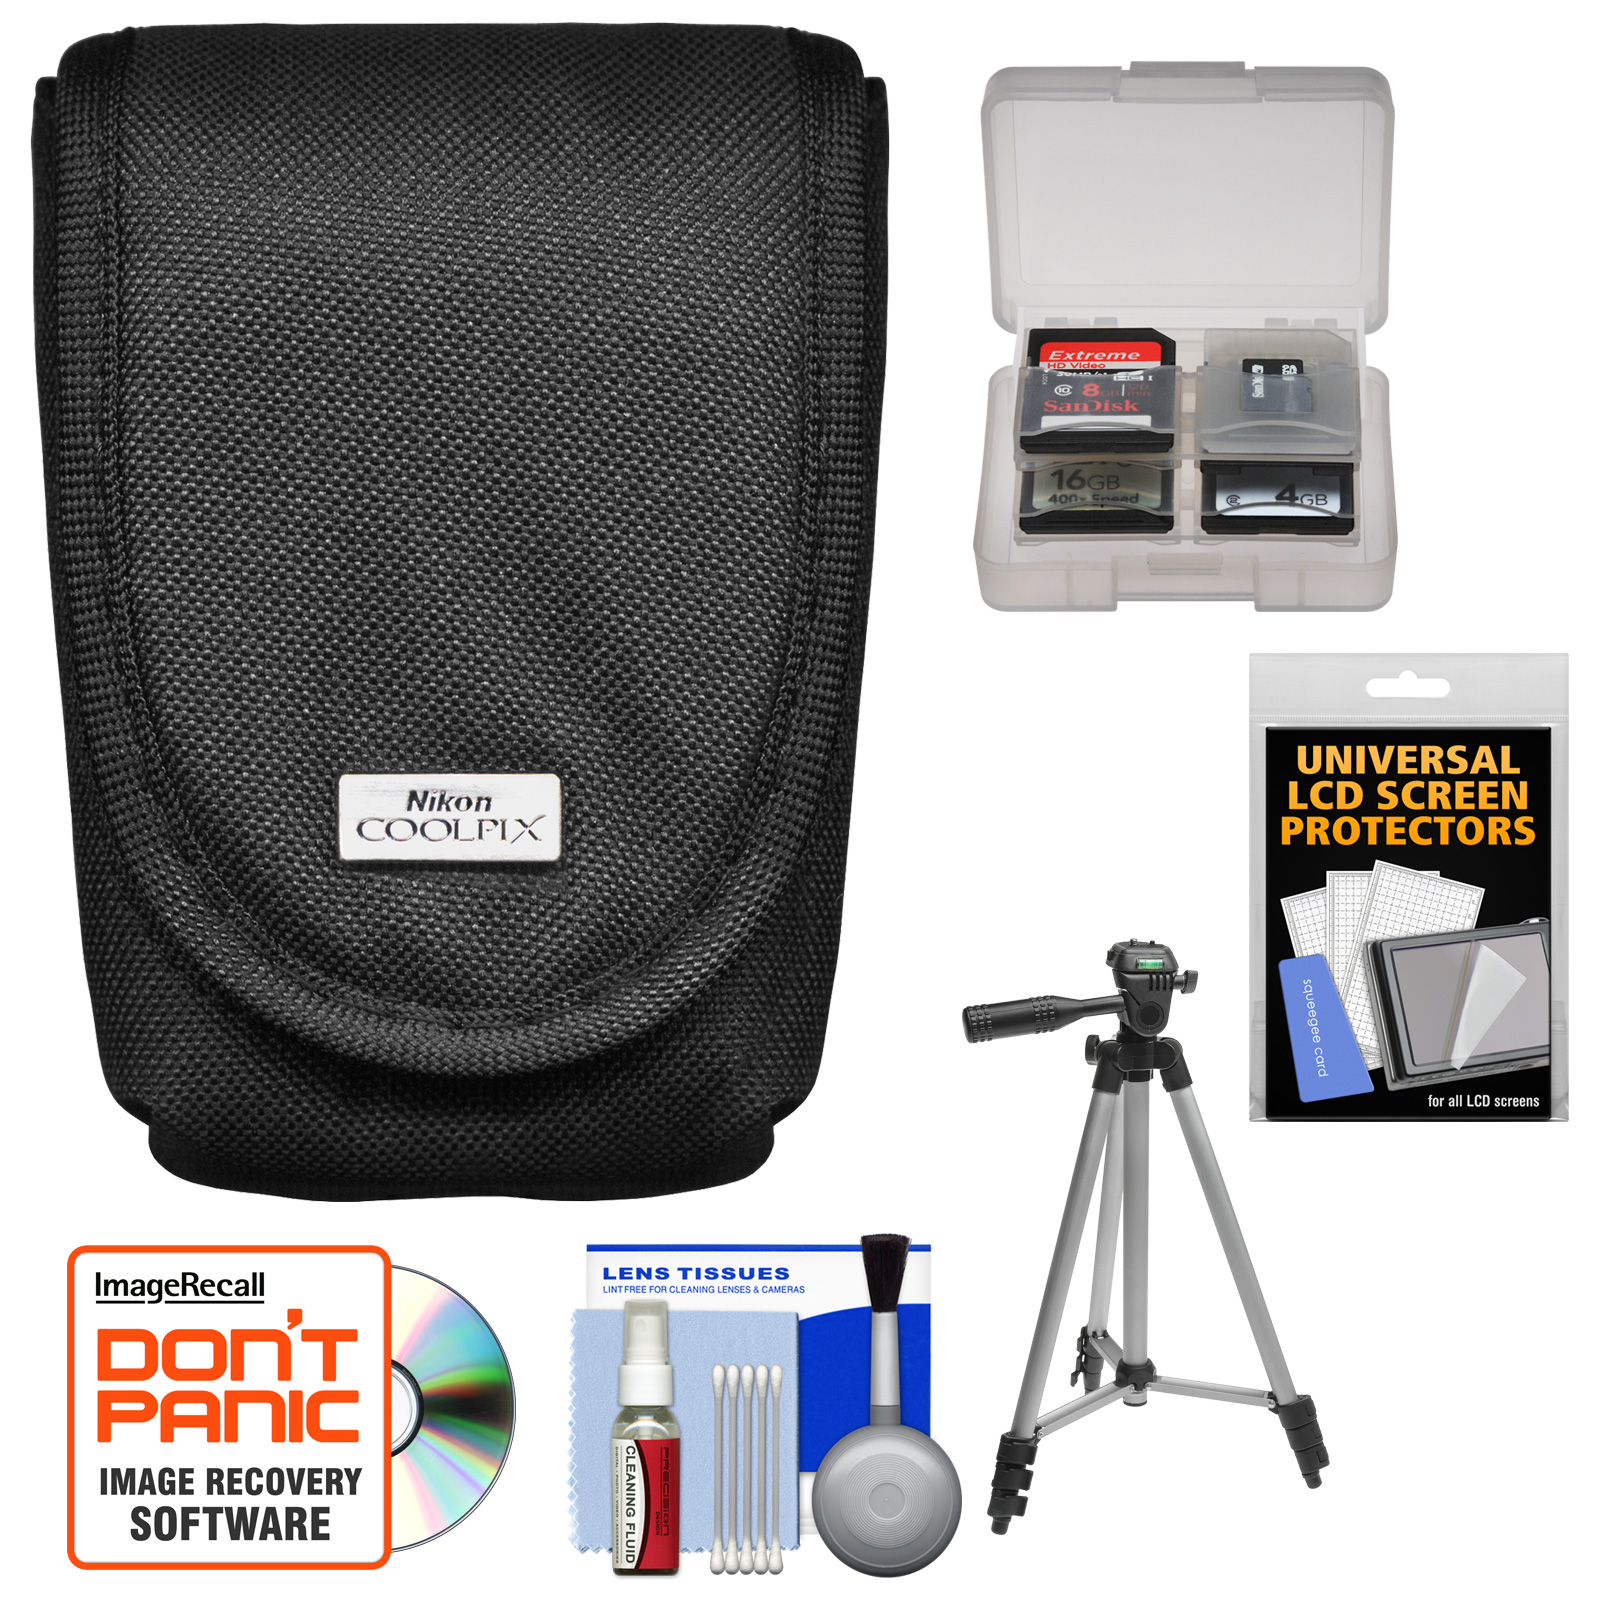 Nikon Coolpix 5879 Digital Camera Case with Tripod   Screen Protectors   Kit for AW110, AW120, P330, P340, S01, S02, S31, S32, S3500, S4300, S5200, S5300, S6500, S6800, S800C, S810C, S9500, S9700